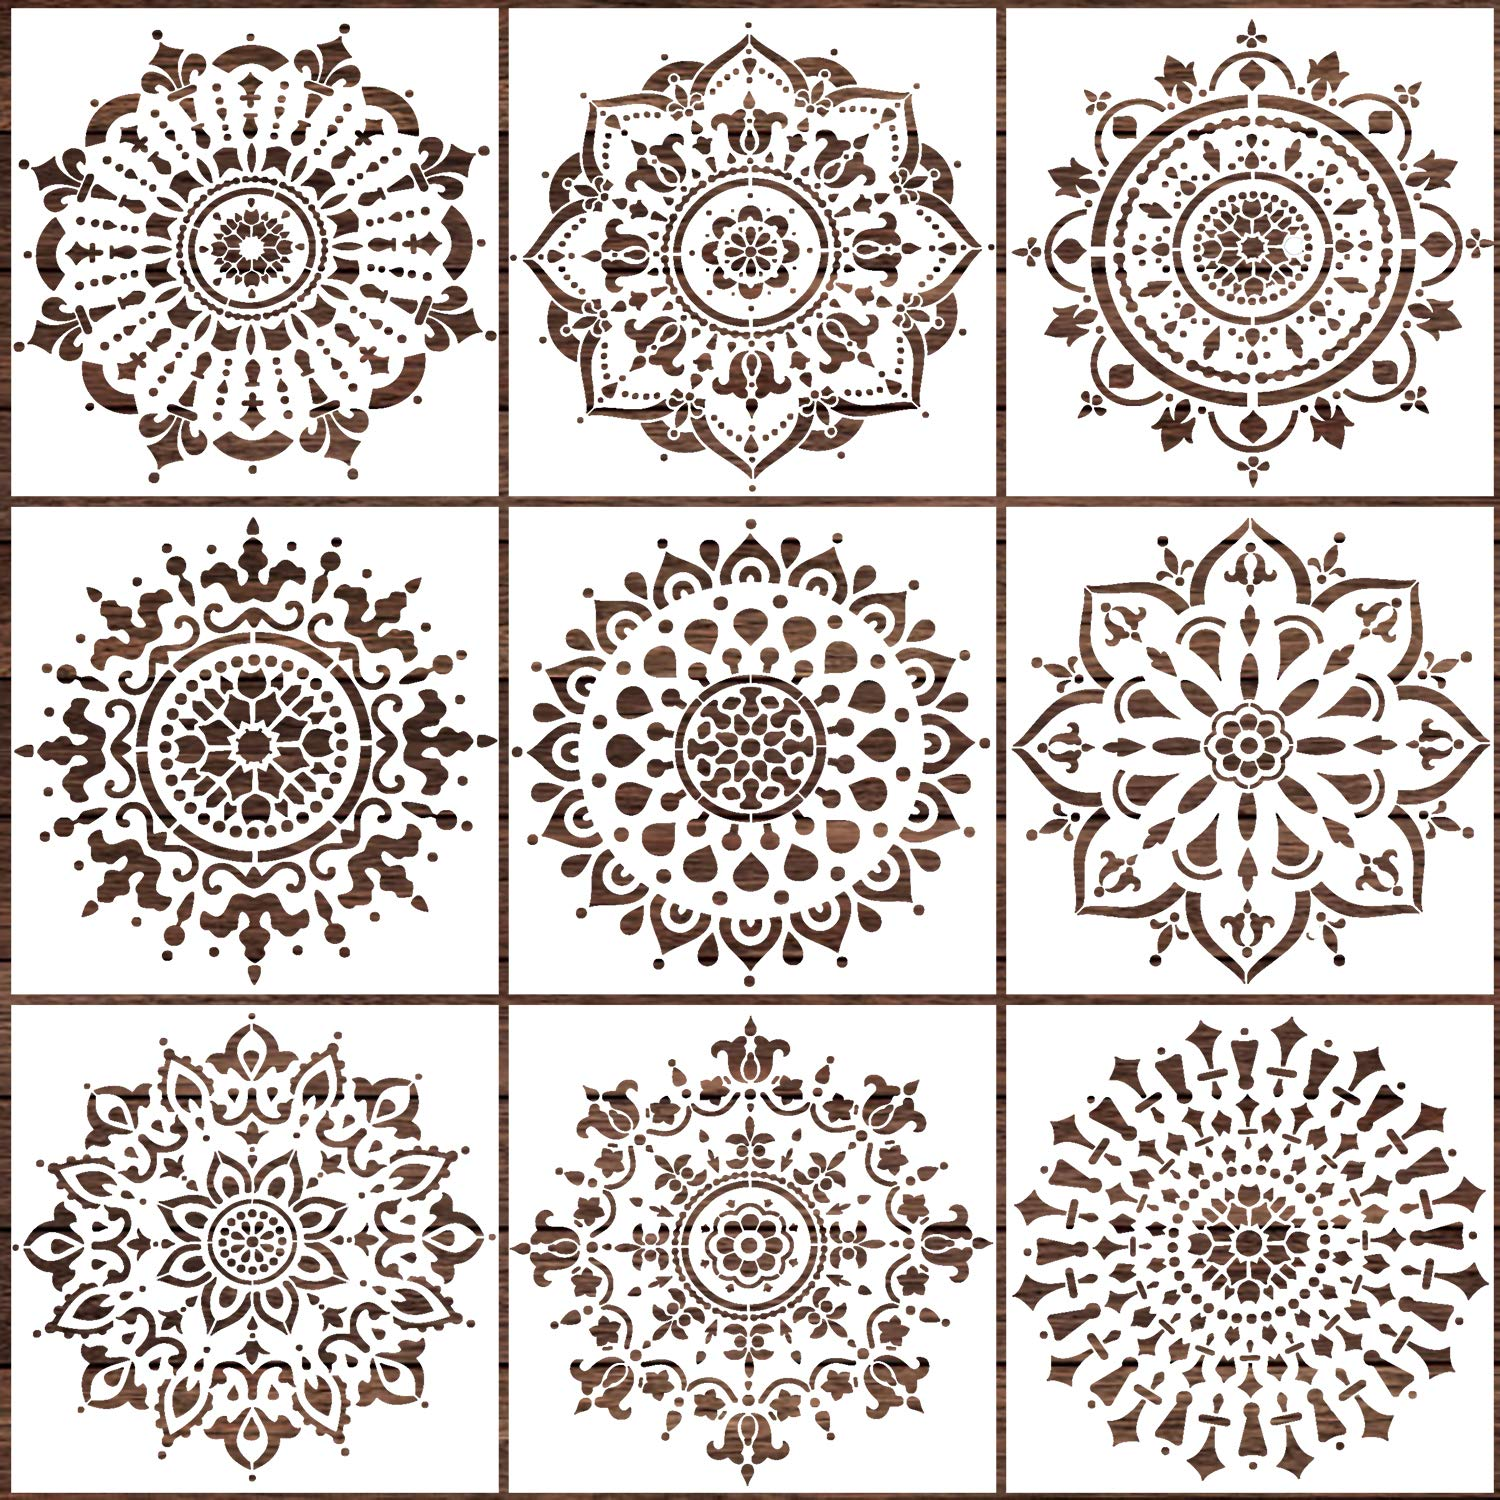 LOCOLO Mandala Stencils Set of 9 (6 x 6 inch) Reusable Stencil Laser Cut Painting Template Wood Floors Wall Fabric Furniture Stencils by LOCOLO